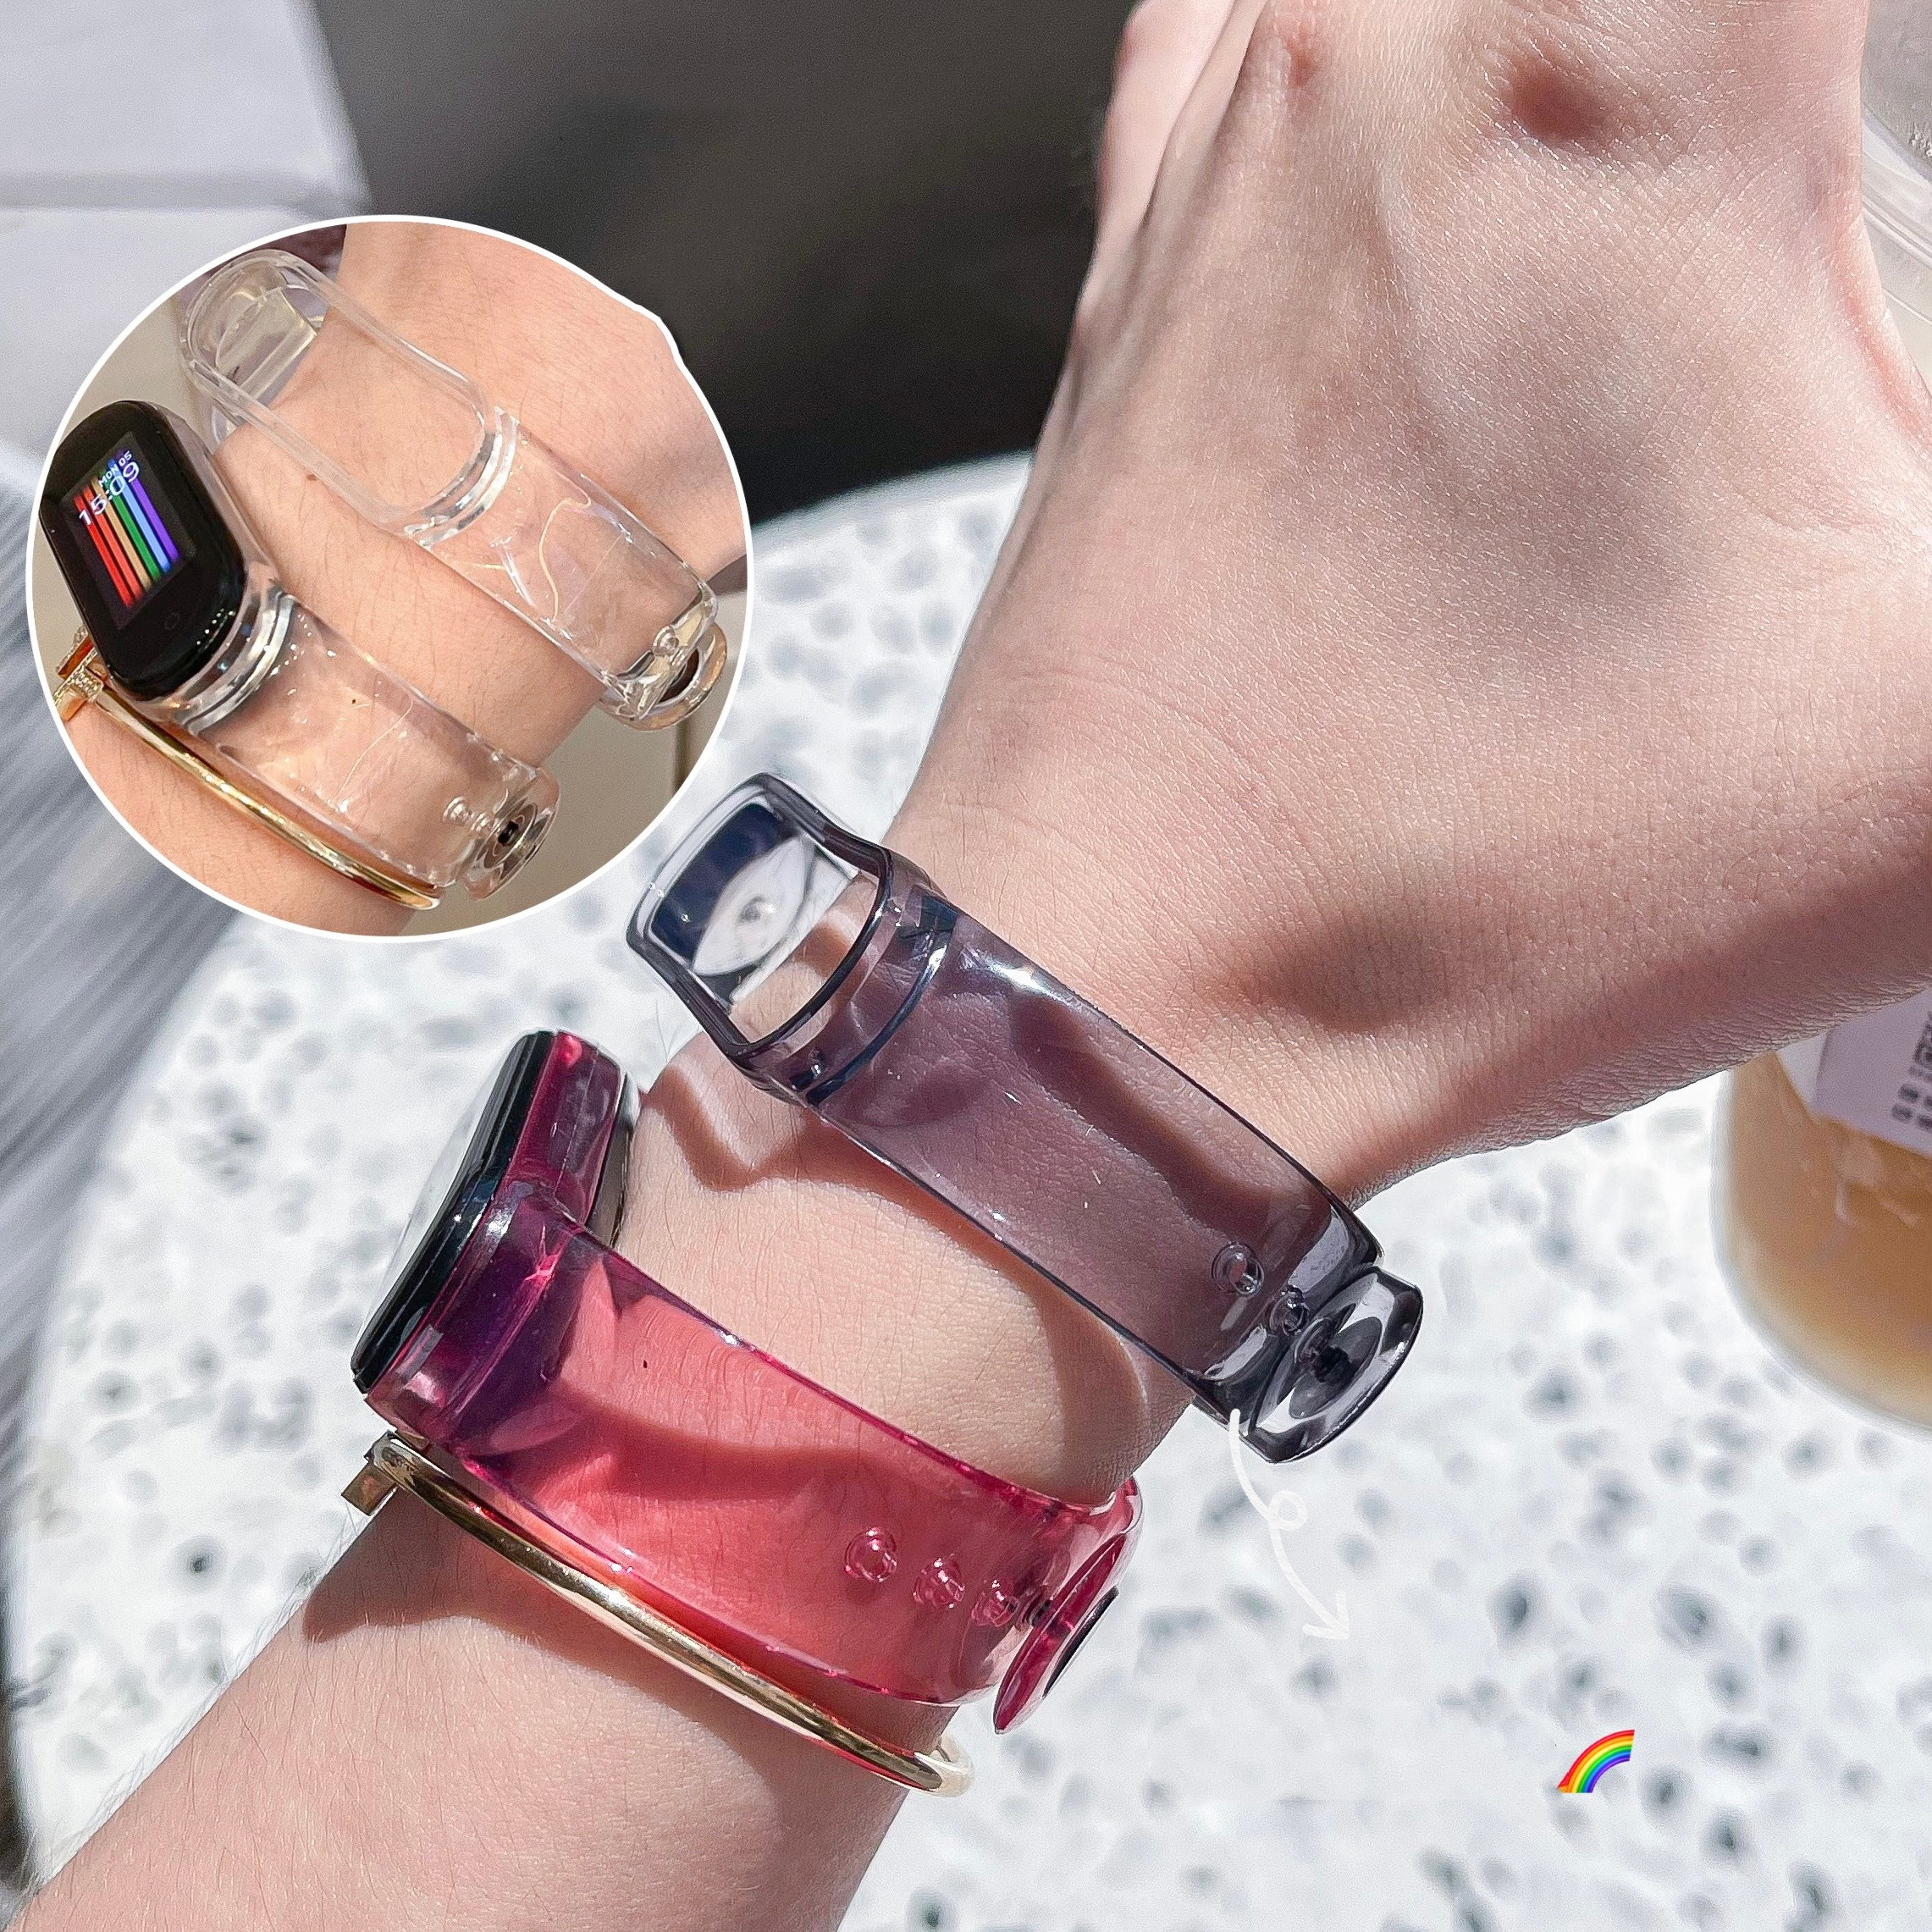 aliexpress.com - Strap For Xiaomi Mi Band 3 4 5 6 Light Change Transparent TPU Wristband Accessory Bracelet For Miband 3 4 5 6 Replacement Strap